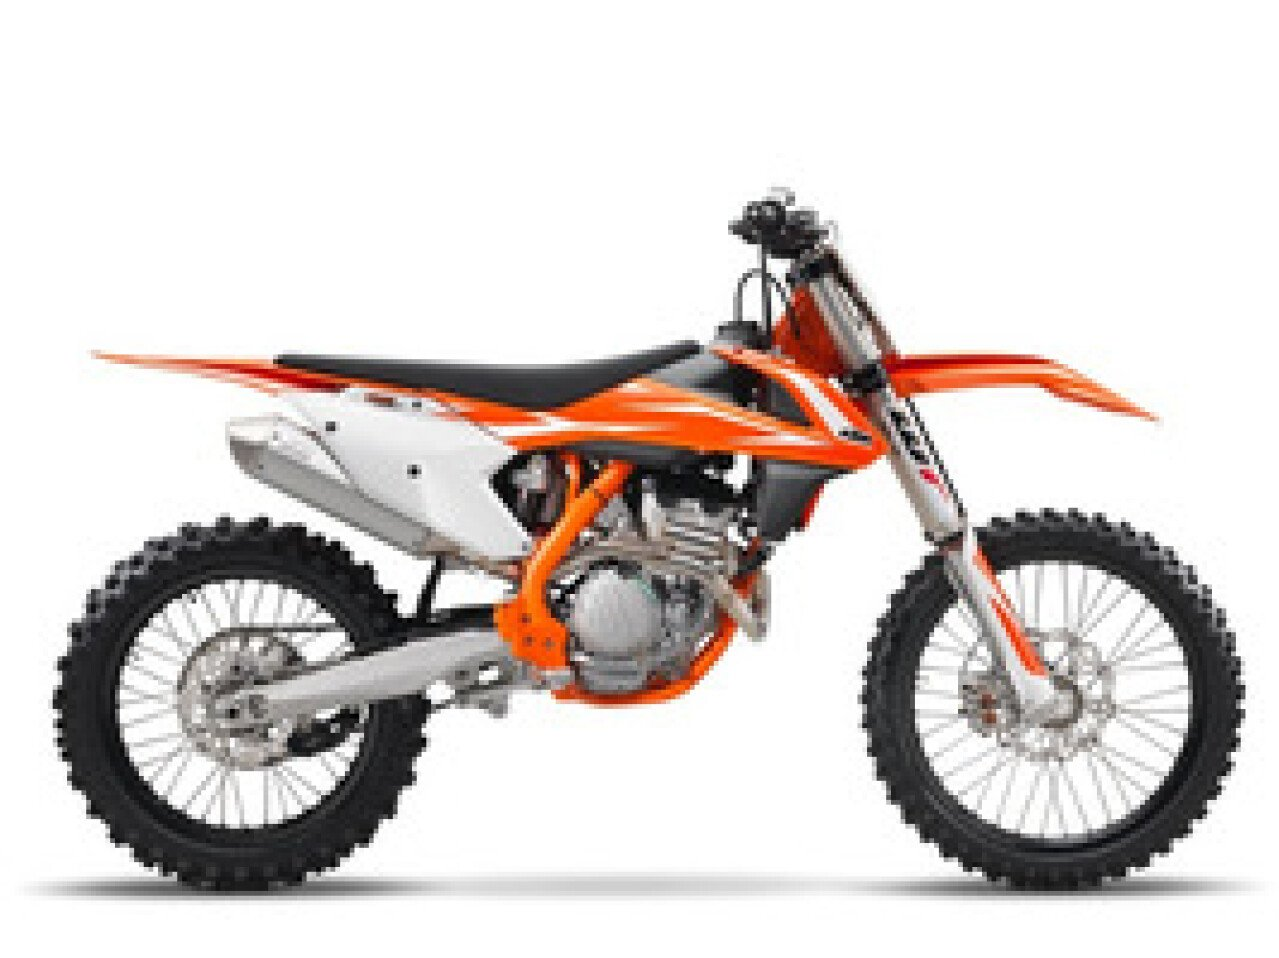 Ktm Motorcycles For Sale Fresno Ca >> 2018 Ktm 250sx F For Sale Near Fresno California 93710